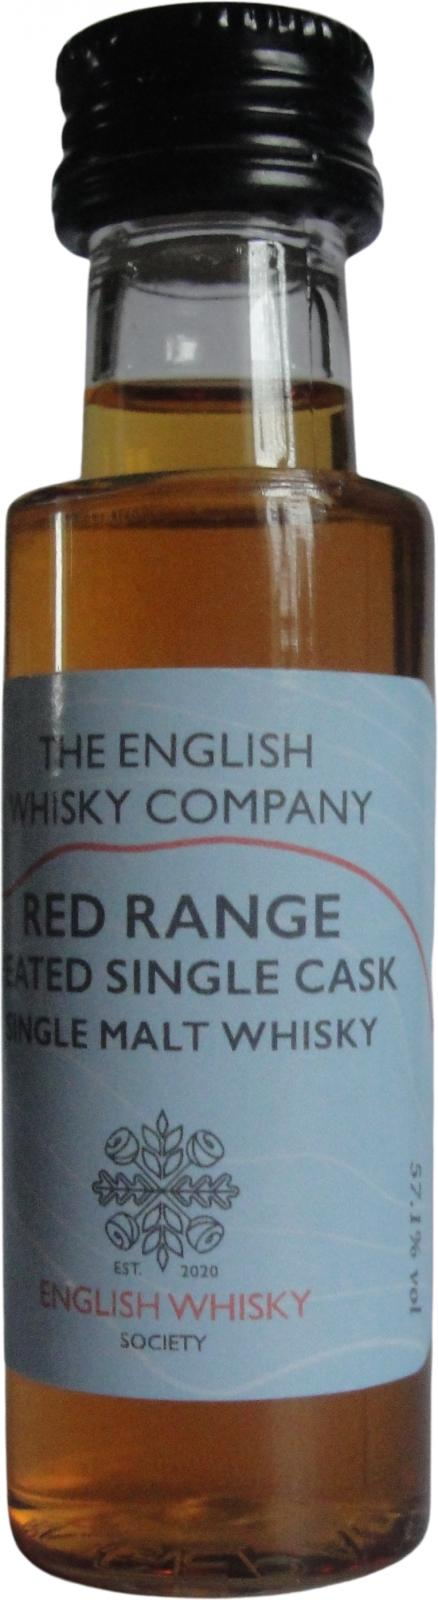 The English Whisky Red Range TDT